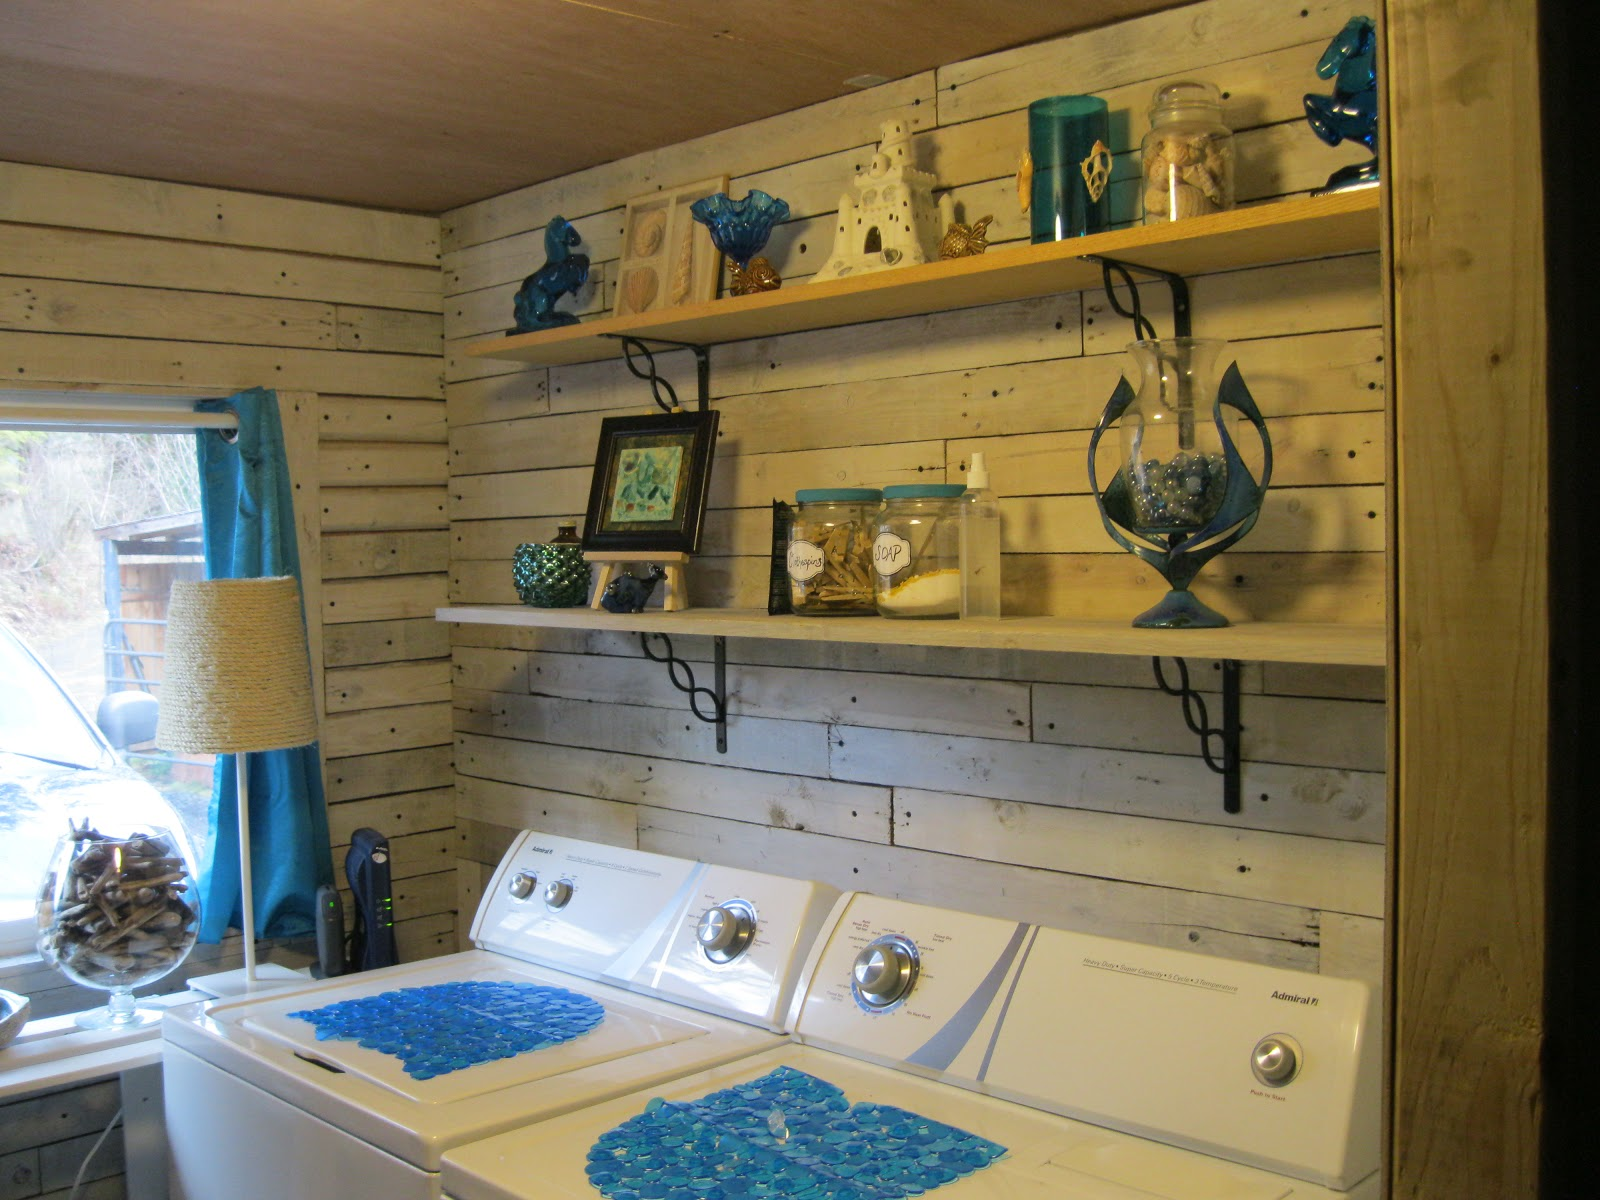 Laundry room makeover ideas for your mobile home - How to decorate a single room ...